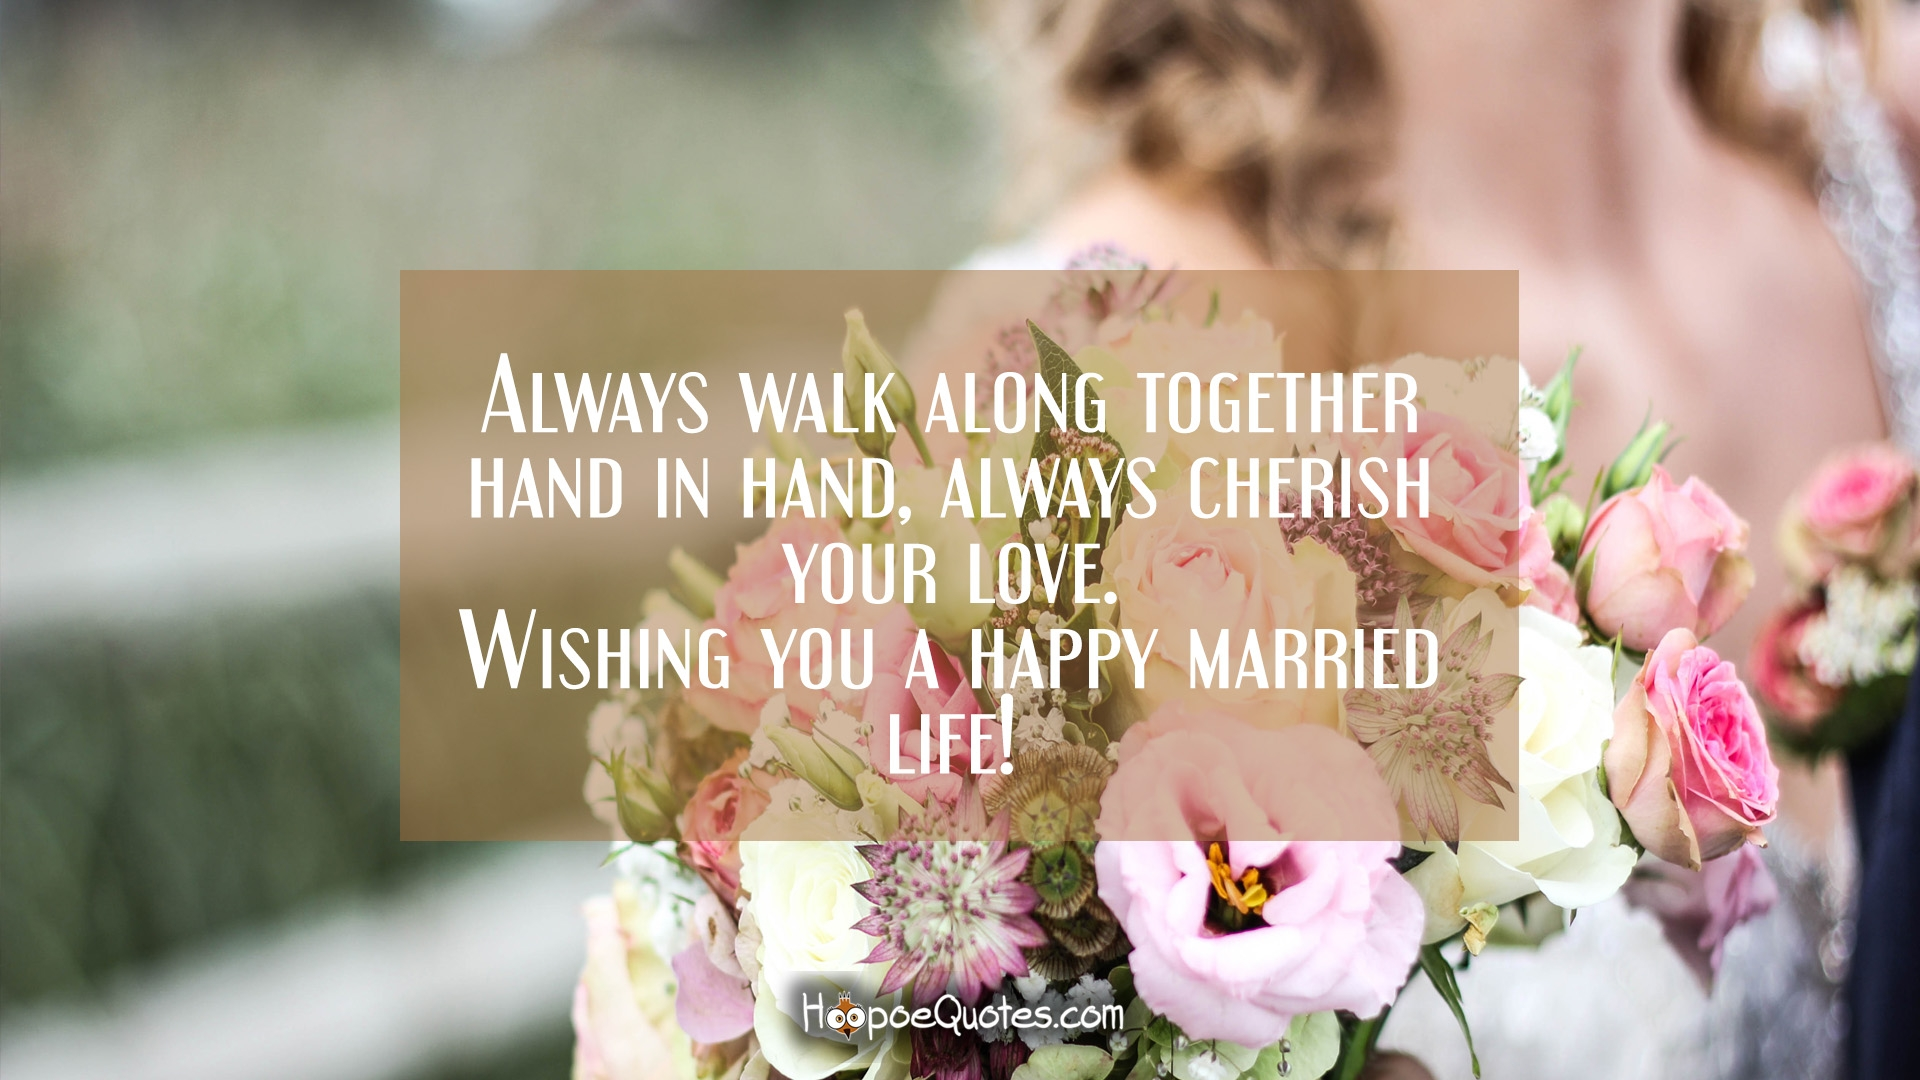 Always Walk Along Together Hand In Hand Always Cherish Your Love Wishing You A Happy Married